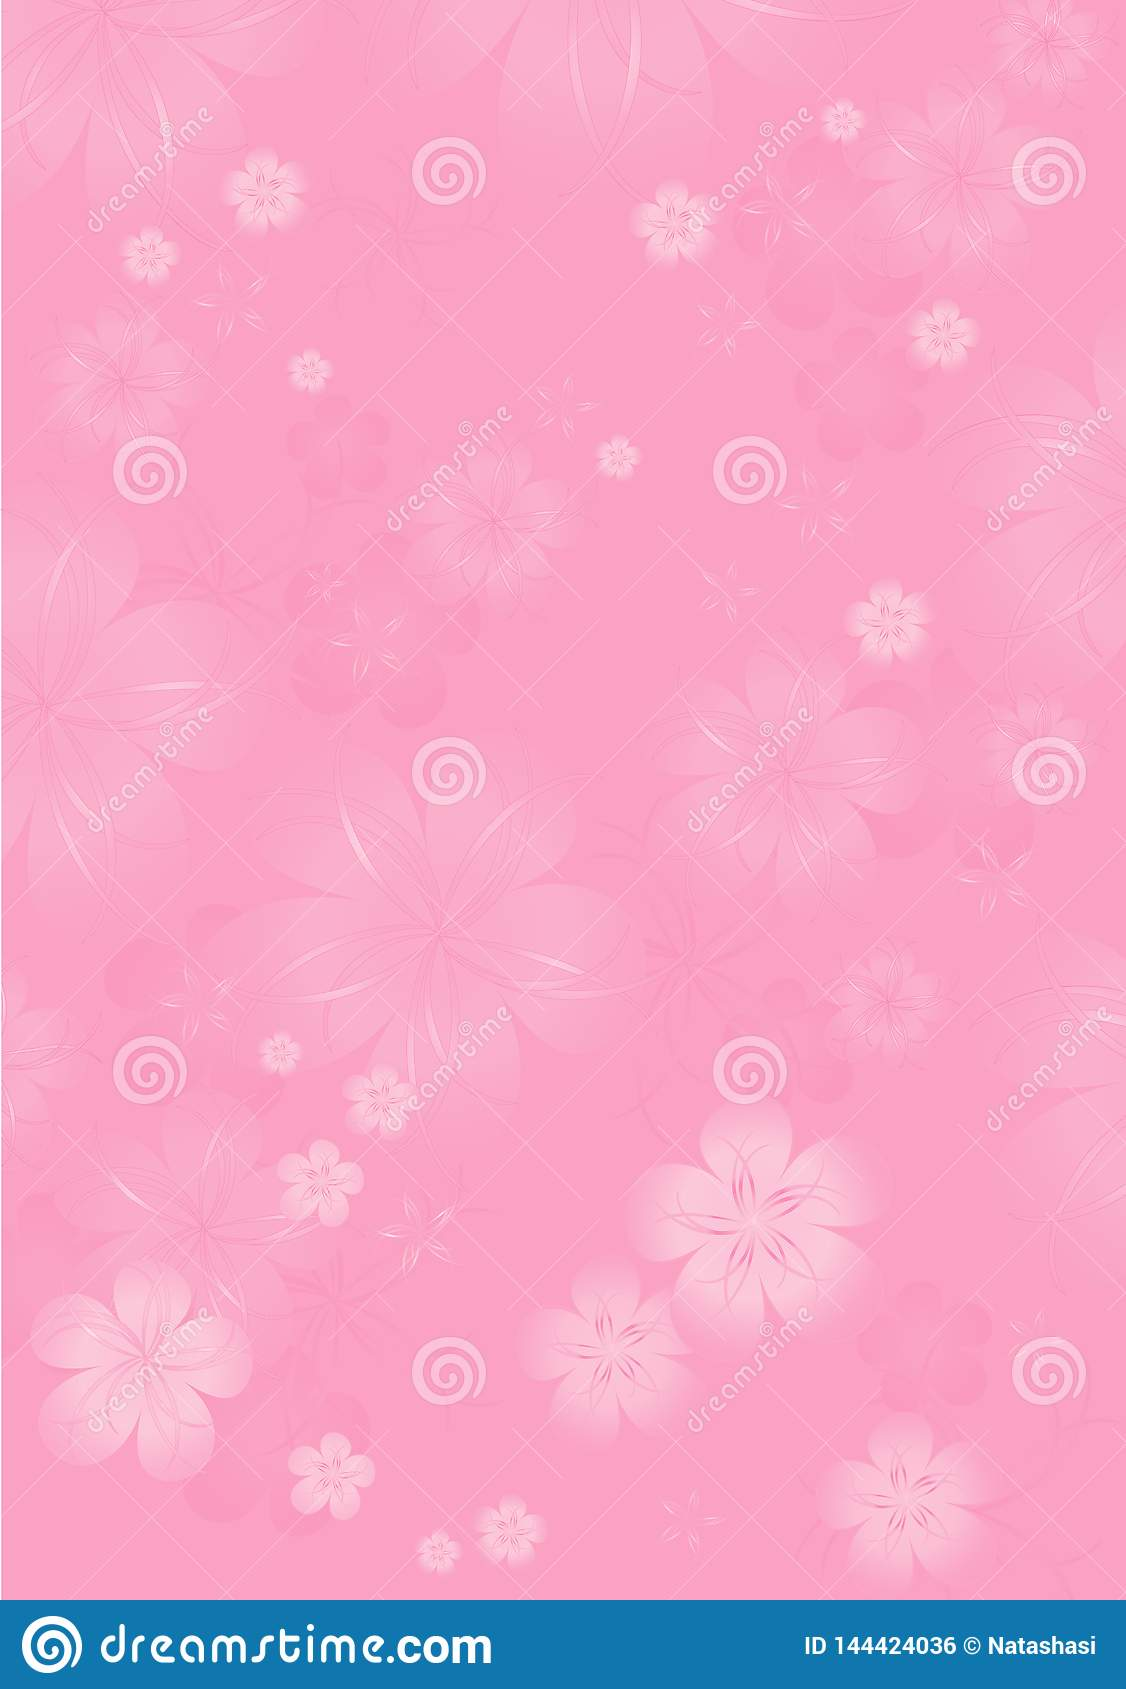 Flowers background. Flowers design. Vector abstract illustration. Light Pink Sakura blossoms background. Vector